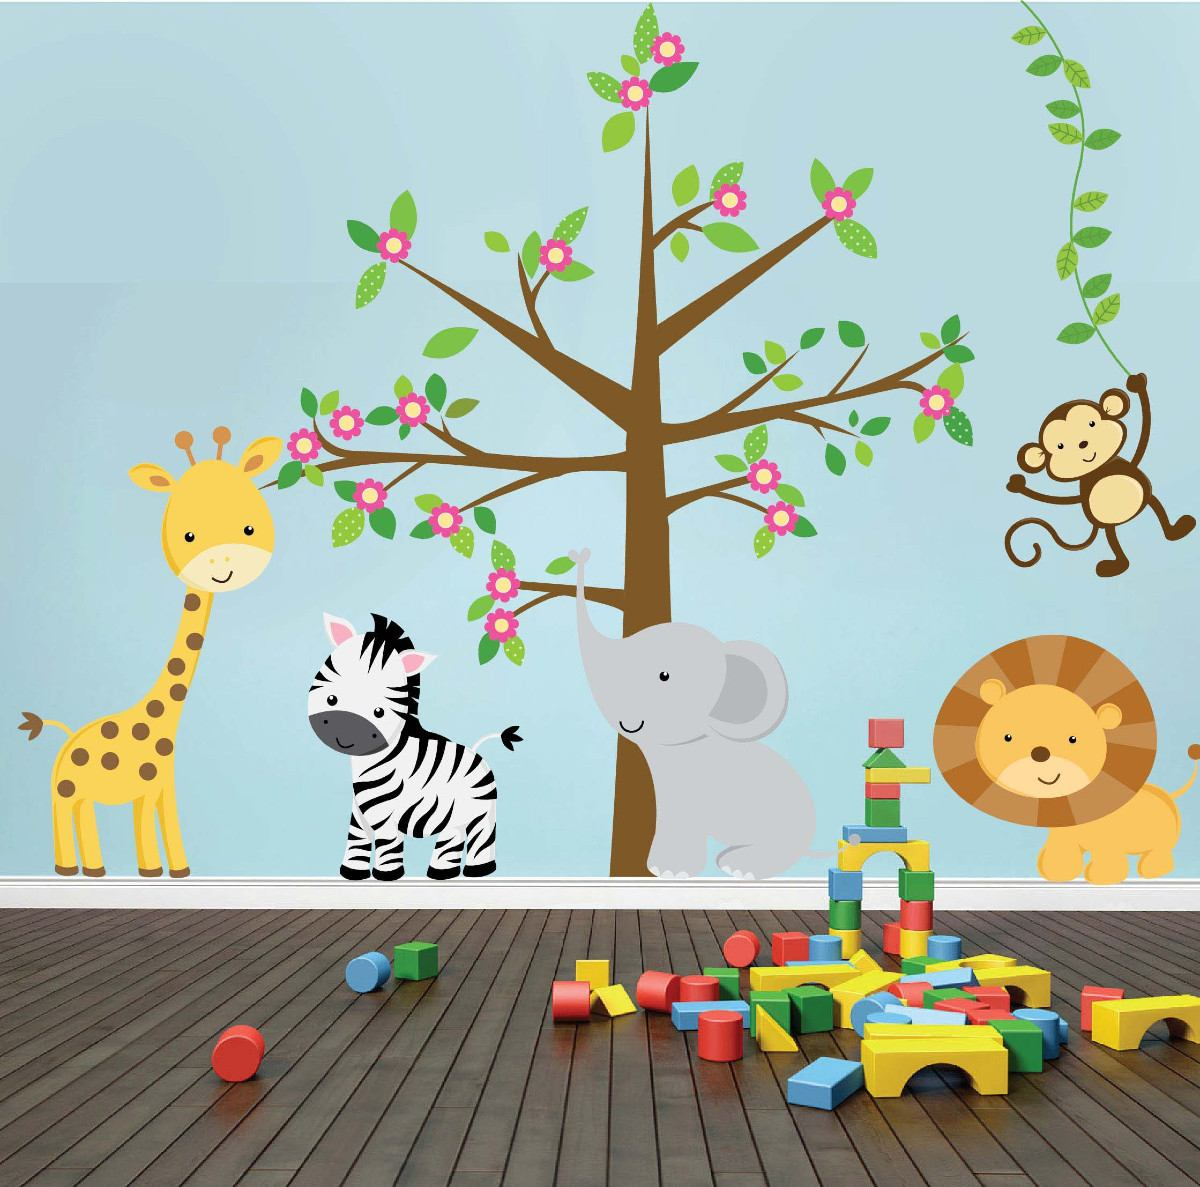 Vinilos decorativos animales infantiles imagui - Decorar pared infantil ...